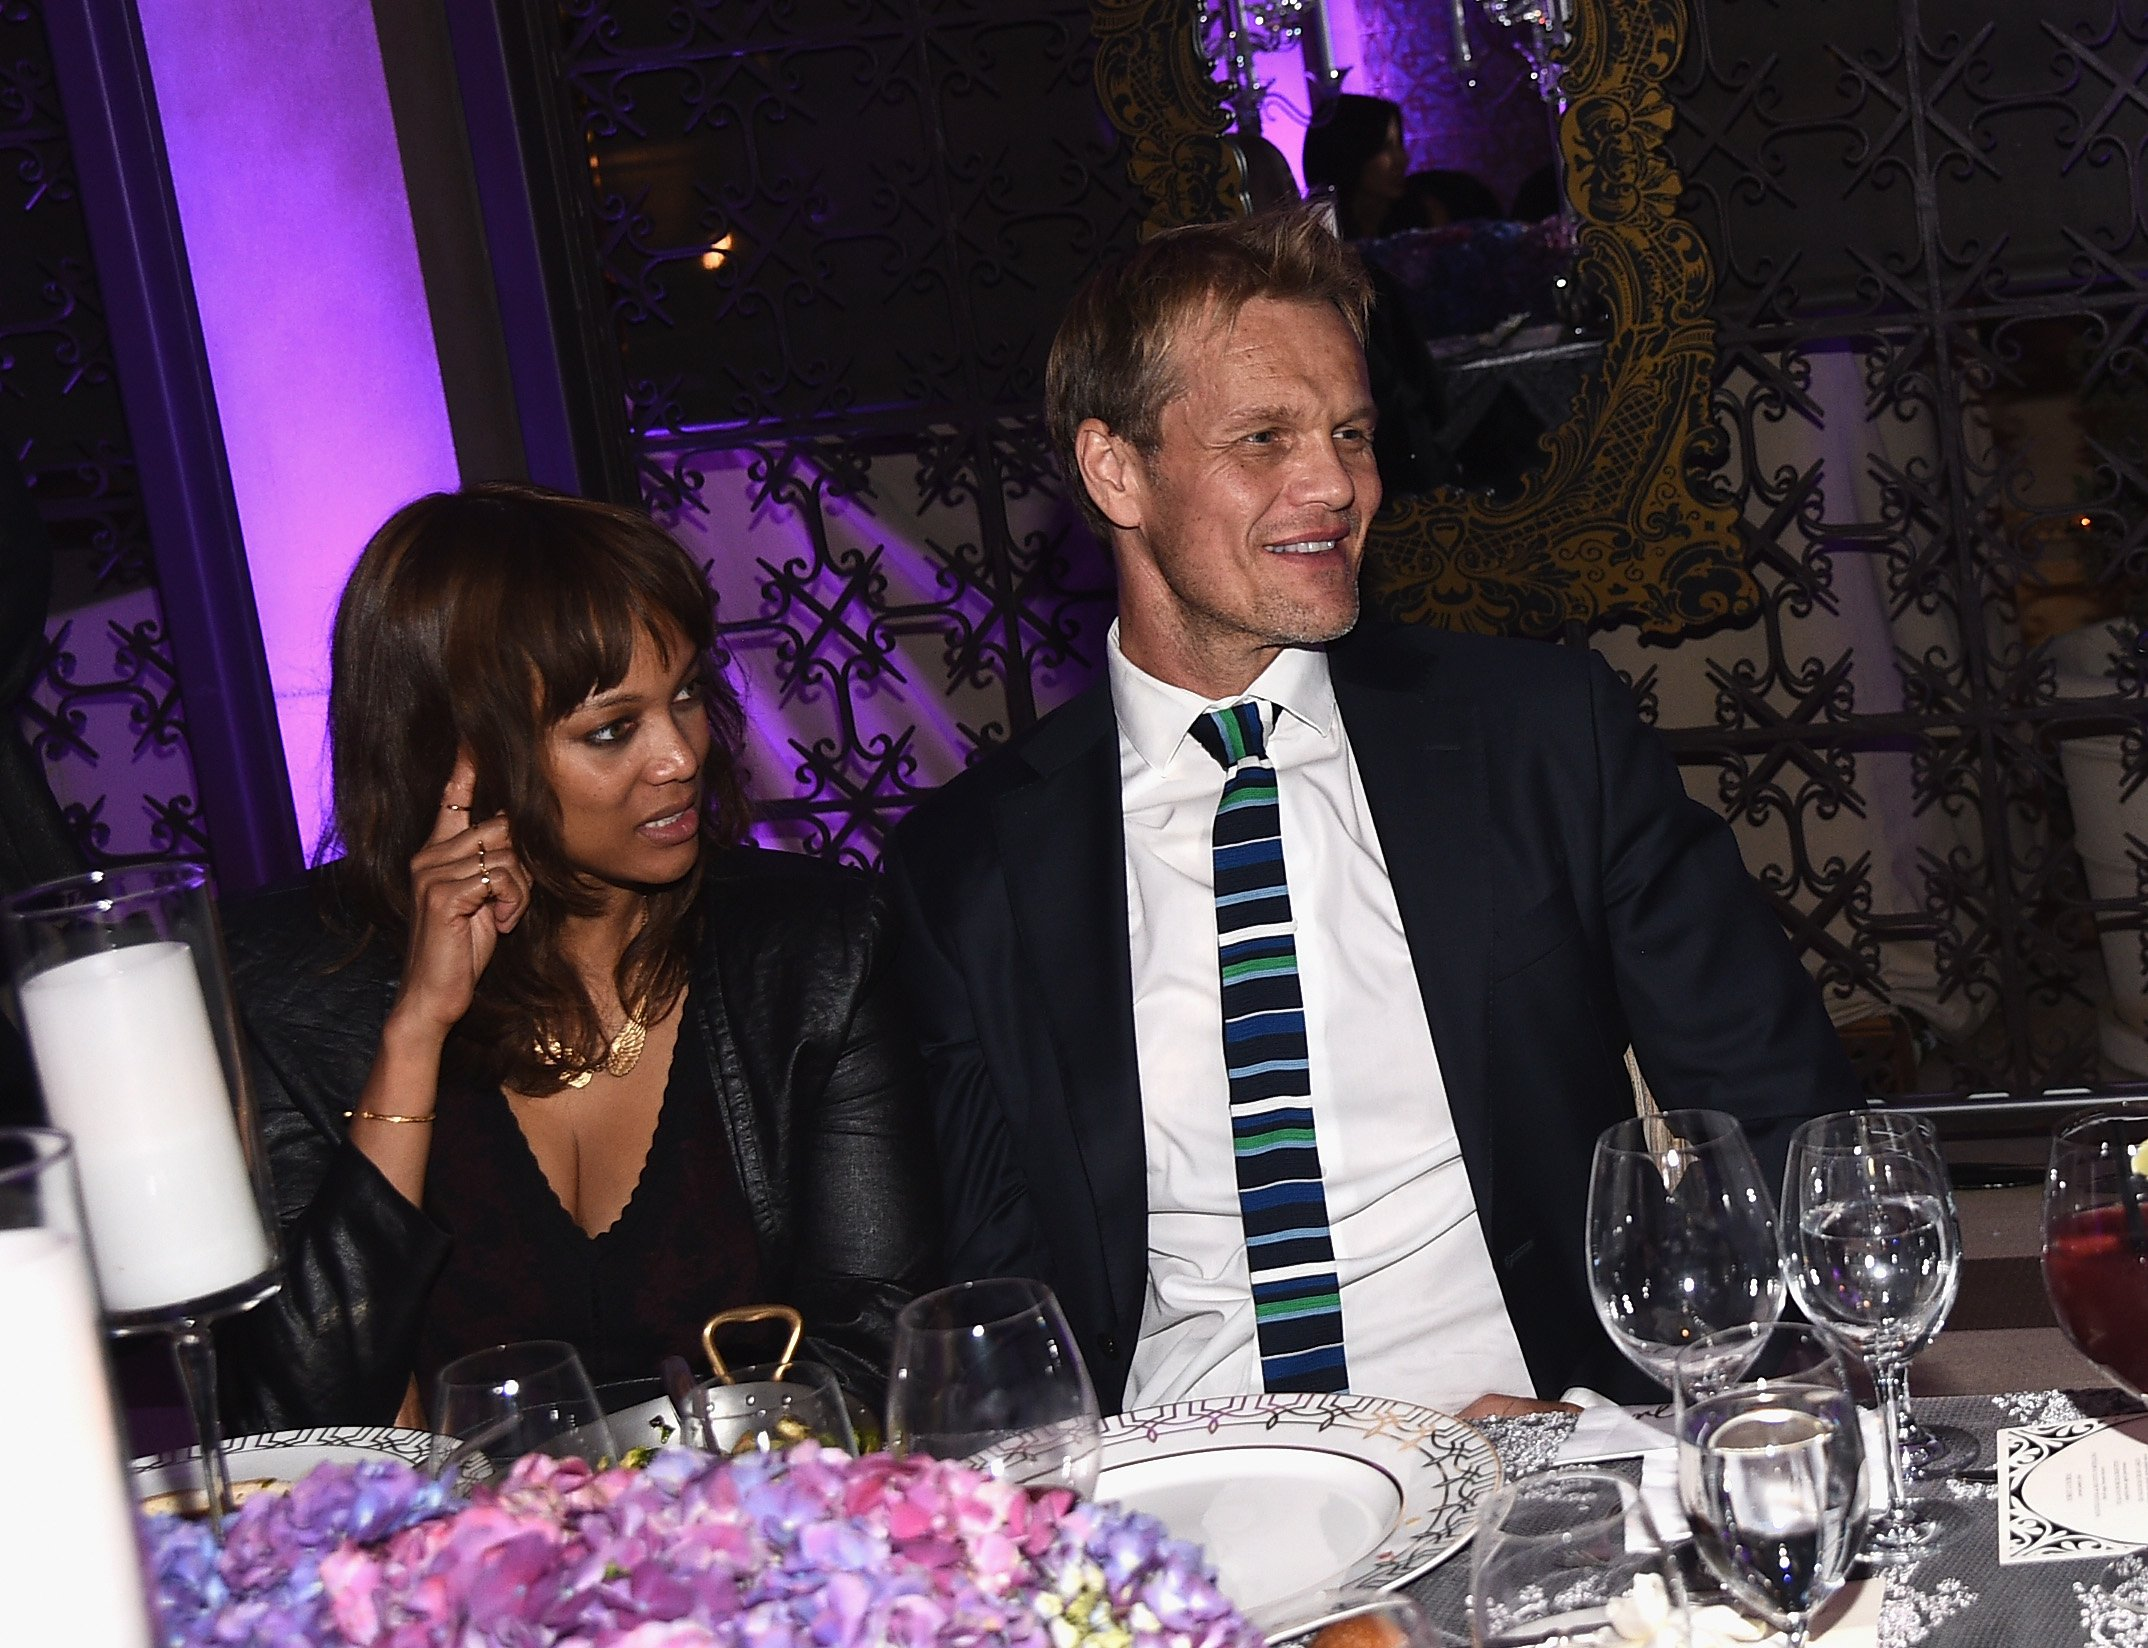 Tyra Banks and photographer Erik Asla attends the August Getty Atelier Dinner at the Montage Hotel Rooftop Grill on November 19, 2014 in Beverly Hills, California | Photo: GettyImages